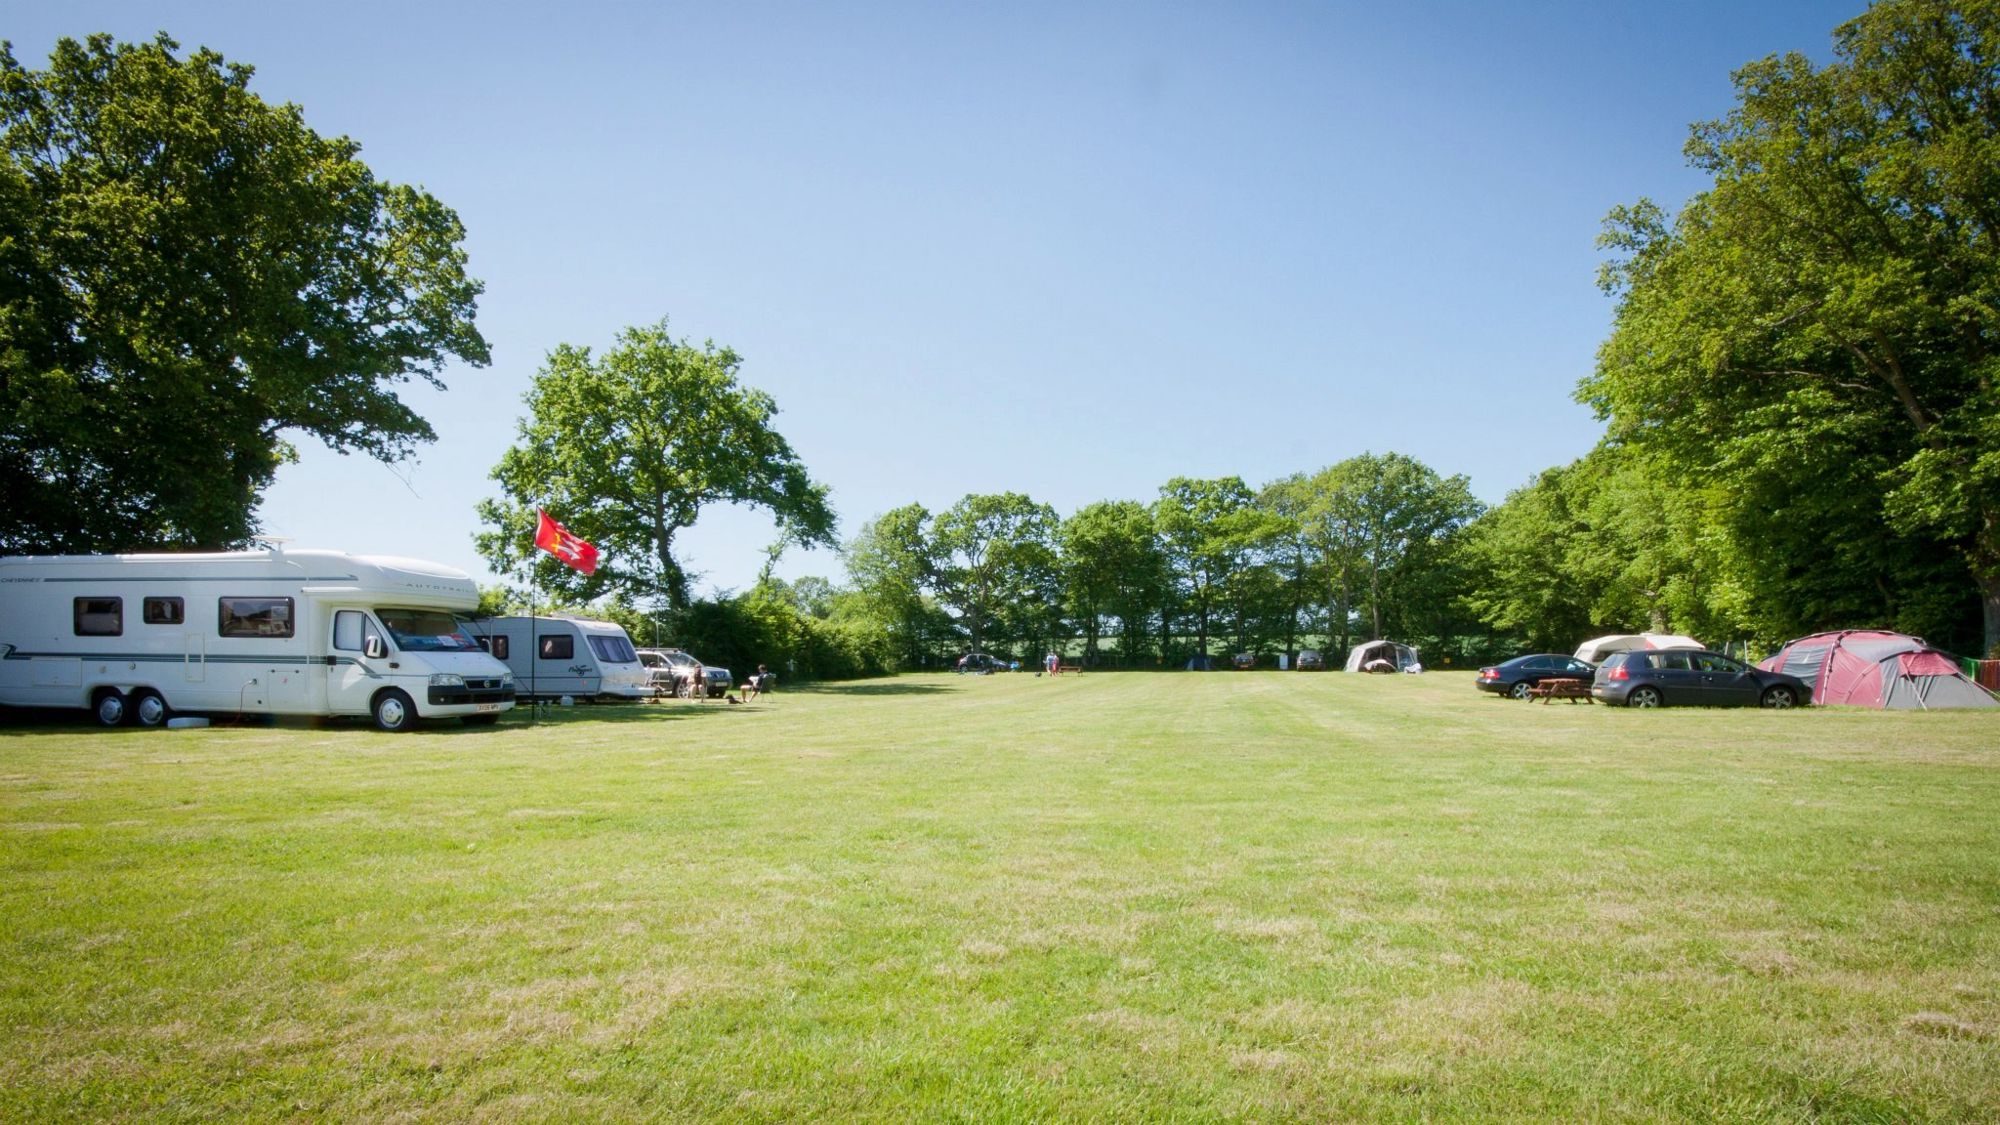 Best caravan sites in the UK